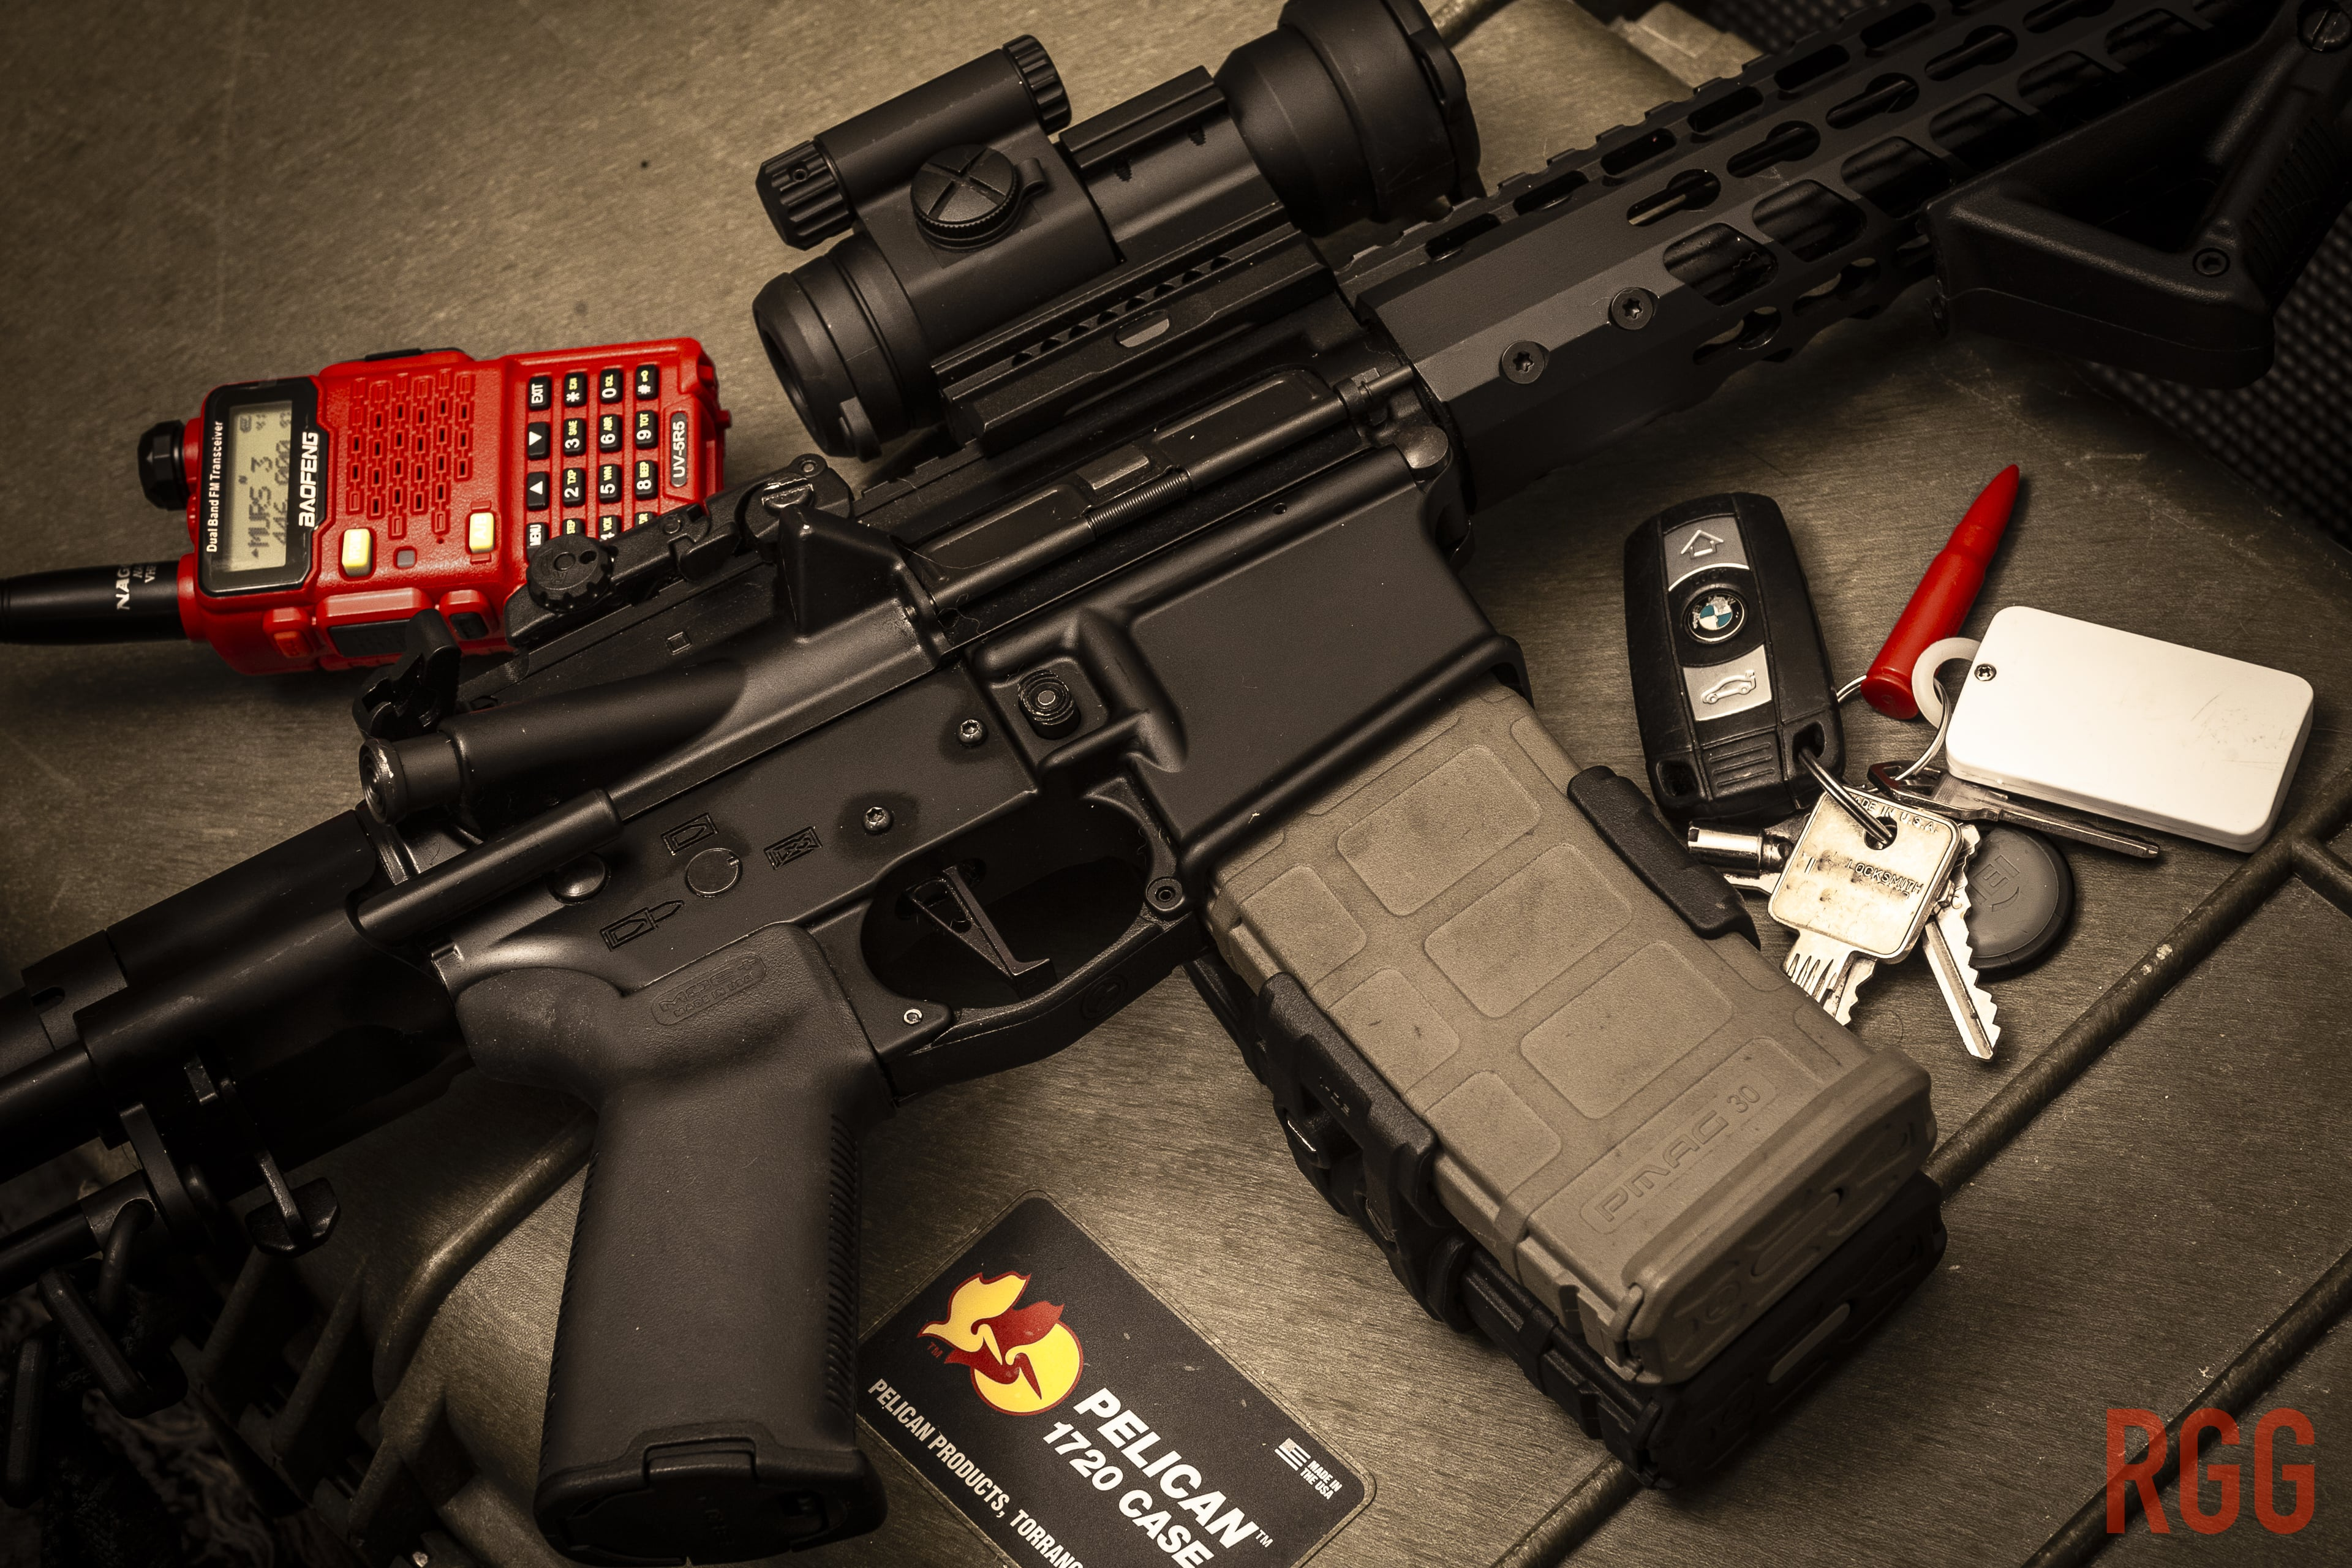 Traveling while armed includes knowing the laws and packing your firearms appropriately.